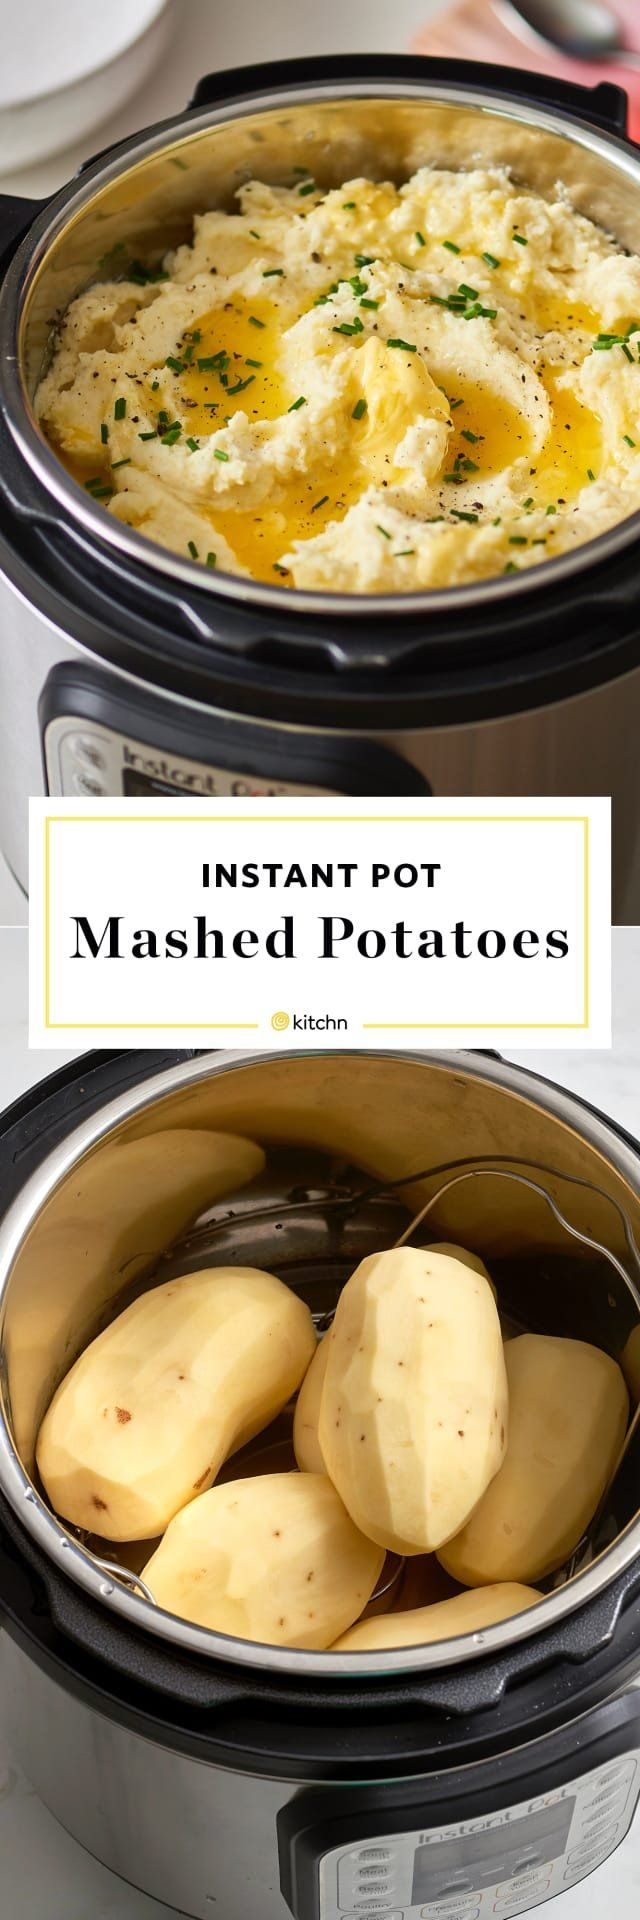 Photo of Recipe: Instant Pot Mashed Potatoes